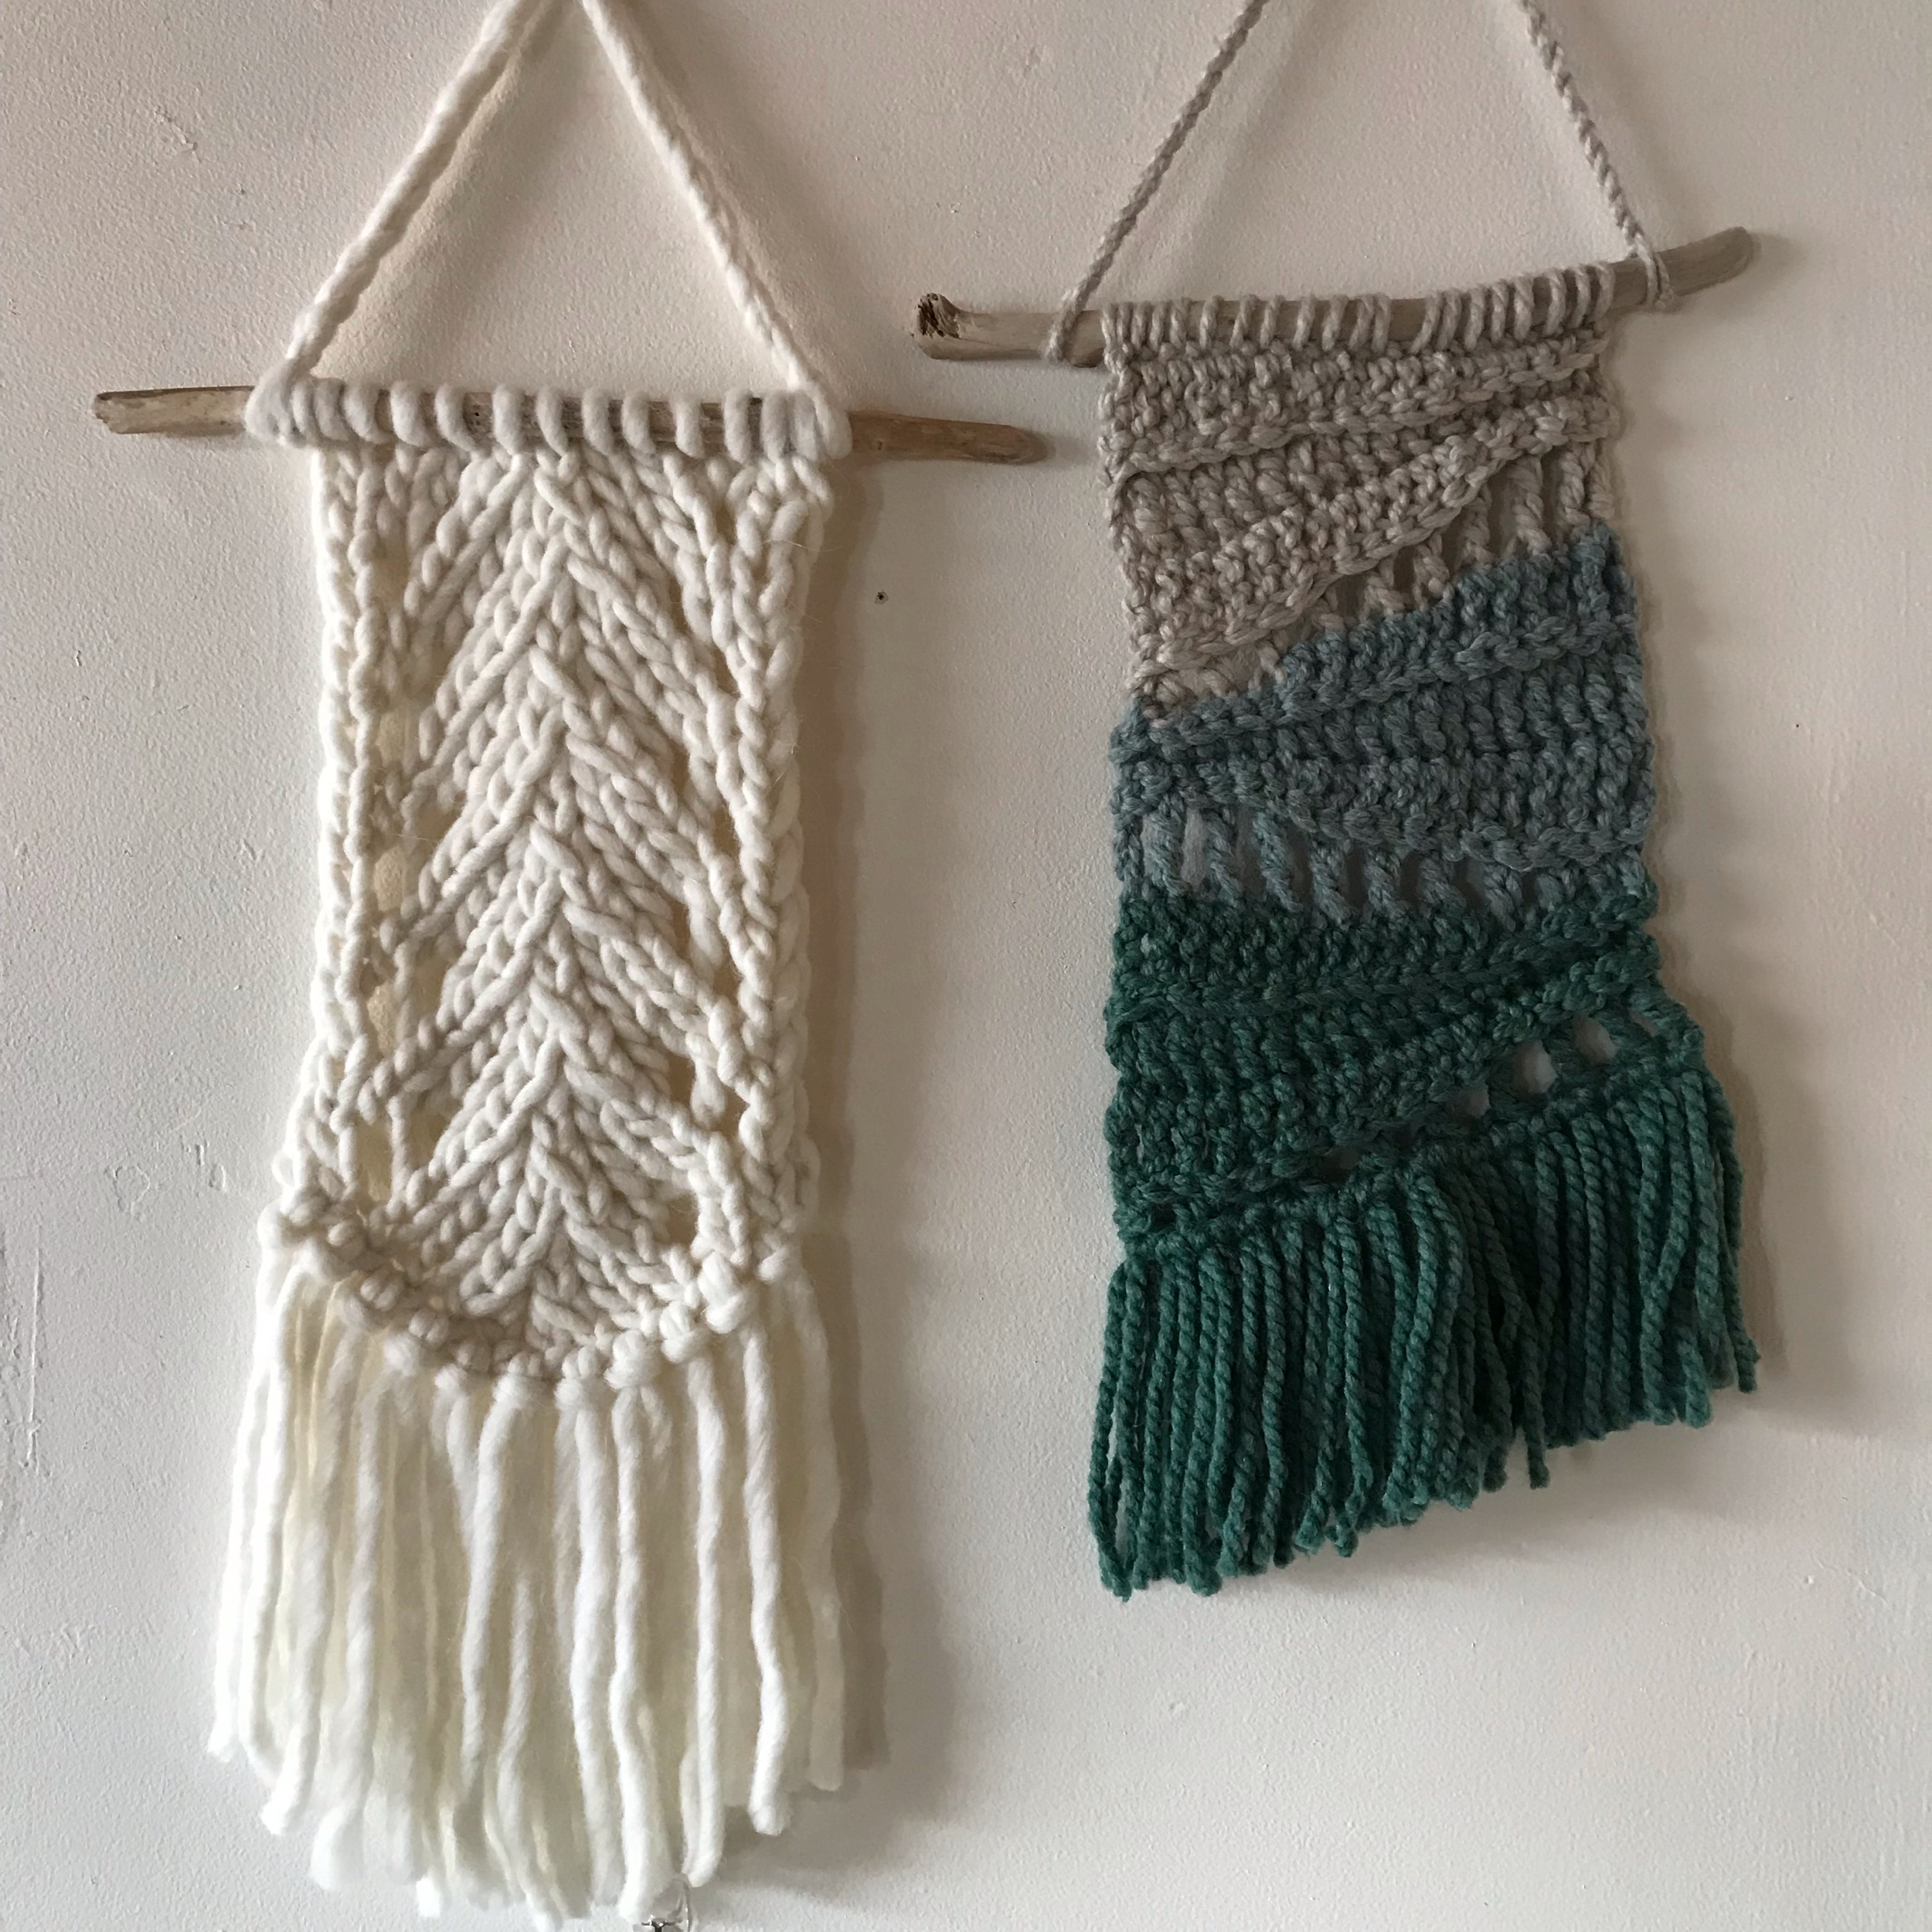 "CURRENT CLASSES & EVENTS - Project CircleMay 31, 5:00pm-7:00pm | no chargeJoin us to work on your longer term projects.Knit or Crochet Wall Hanging Make-and-TakeJune 8, 10:00am-2:00pm | $40 + materials | Sandy BuzzelliIn this Make-and-Take Class, you'll create a beautiful and chic wall hanging, ready to display the moment you arrive home. Whether you'd like to learn a new stitch or just take some creative time for yourself, you'll learn tips and tricks for embellishing and displaying your new wall art, and you'll be inspired to design more of them on your own!Prerequisites: Knit: you should know how to cast on, knit and purl, and bind off. Crochet: you should know how to chain and single crochet.World Wide Knit In Public DayJune 8, 2:00-5:00pm | no chargeWorld Wide Knit in Public Day is the largest knitter-run event in the world. It started in 2005 and is now celebrated in 57 different countries!Join us at Yarn Folk for some outdoor knitting*, if weather permits, and indoor knitting if it doesn't.*It may be World Wide Knit in Public Day, but crochet is ALWAYS welcome!Intro to Shawl Knitting I: Age of Brass & SteamJune 12 & 19, 5:00-7:00pm | $20 + materials | Ann MinerThis kerchief-sized shawl only requires about 100g of DK weight yarn, but introduces some basic principles of shawl-knitting: the garter tab cast on; using yarn overs, make 1 left and make 1 right to shape the shawl, and the sewn bind-off for a stretchy edge.High Relief Cables HatJune 15 & 22, 10:00am-12:30pm | $40 + materials | Sandy BuzzelliWhether you're brand new to knitting cables or you're an old hand, you'll delight in knitting the Magic HRC hat! High Relief Cables take advantage of strategically placed purl stitch to add depth and reversibility to standard cables. We'll start with the basics of cable knitting and then explore how High Relief Cables work and how we can apply the concepts to other cable patterns.Prerequisites: you should know how to cast on, how to knit and purl, and how to knit in the round on a 16"" circular needle.Project CircleJune 28, 5:00pm-7:00pm 